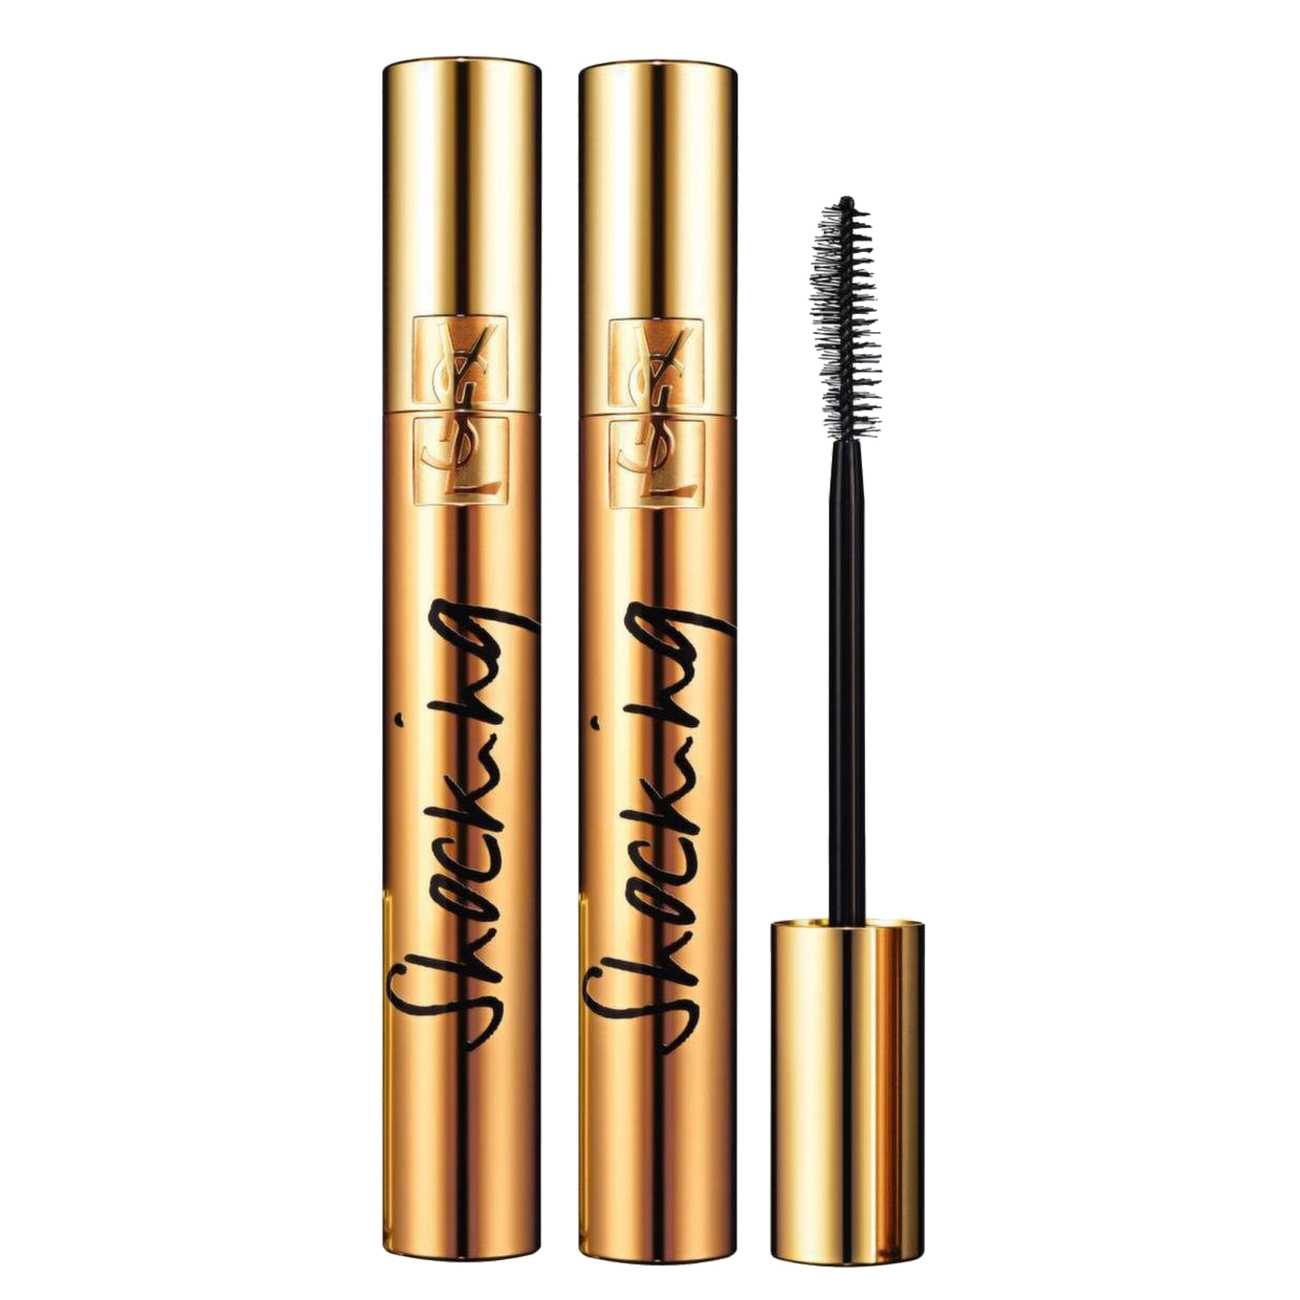 VOLUME EFFET FAUX CILS SHOCKING DUO 15 ML imagine produs